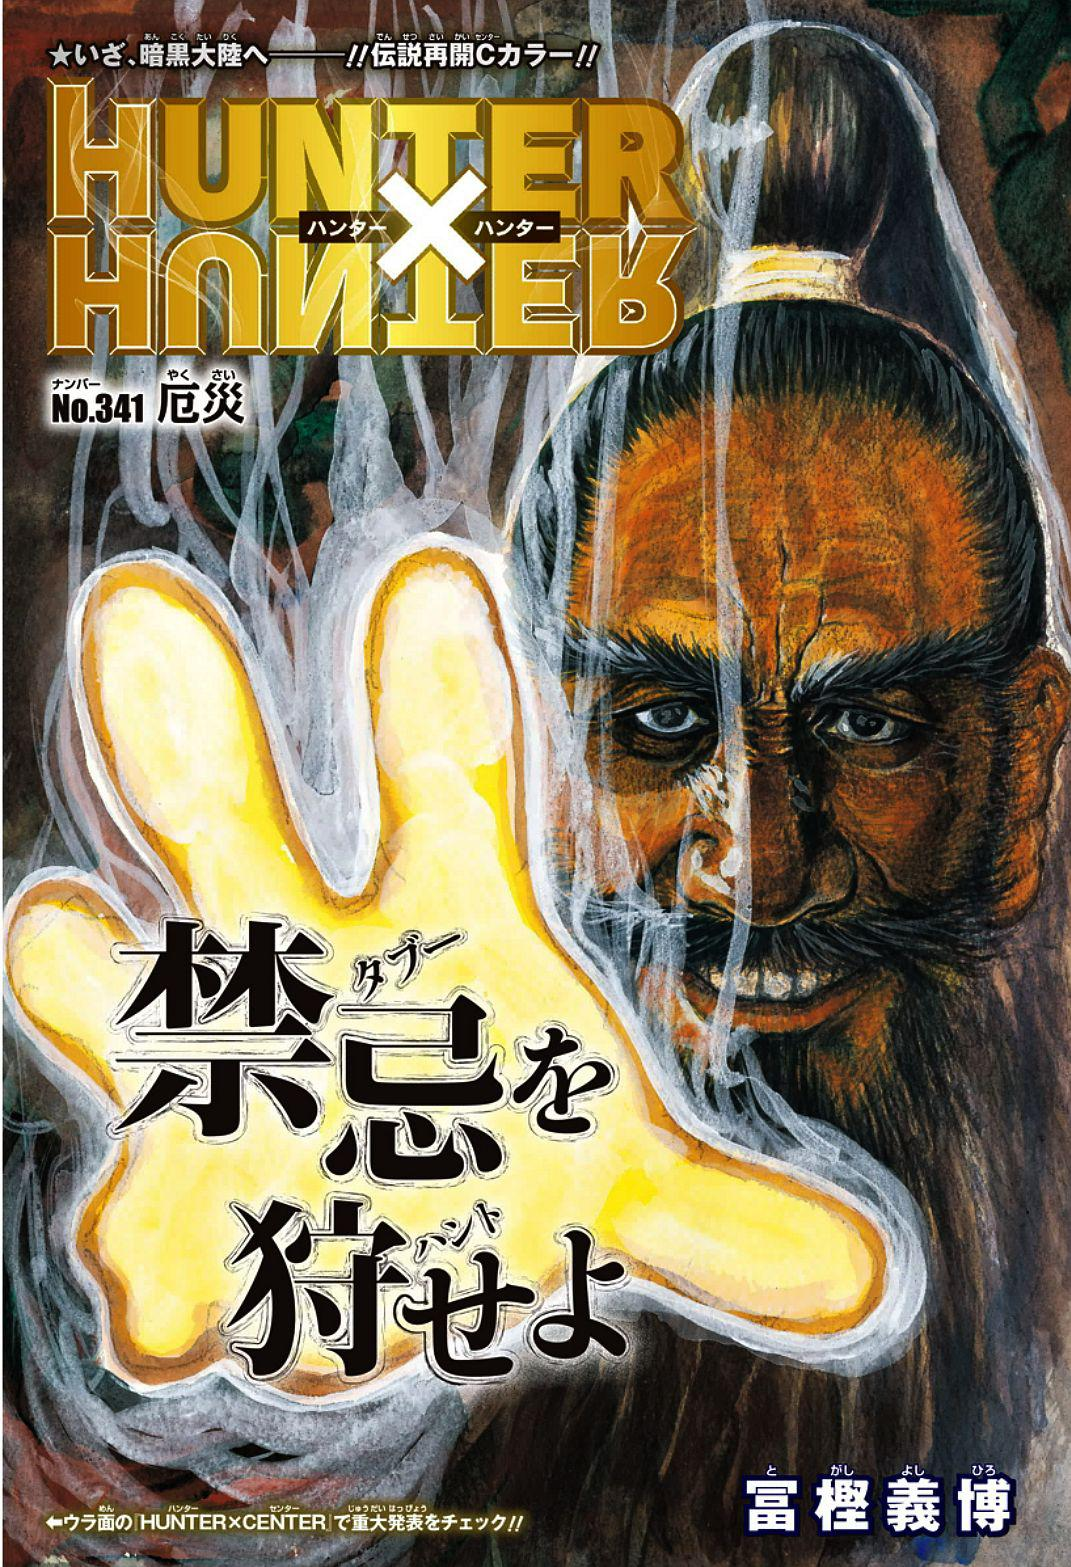 Hunter X Hunter Weekly Shonen Jump 20141 #27